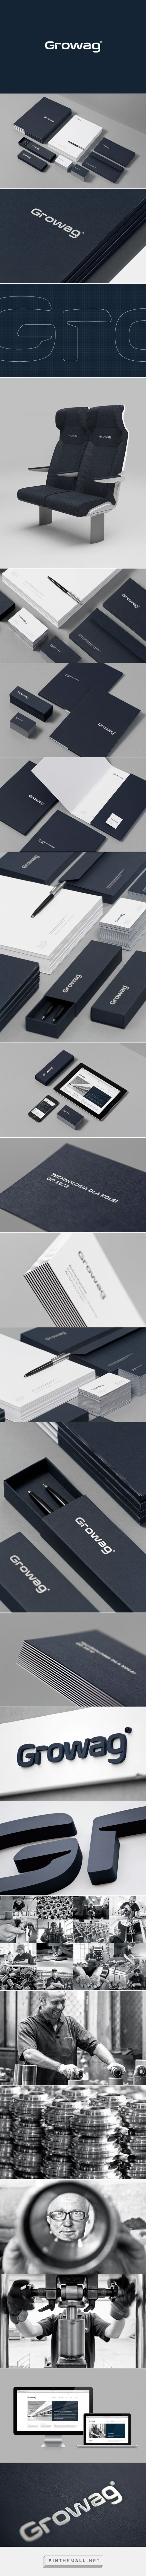 GROWAG on Behance - created via http://pinthemall.net